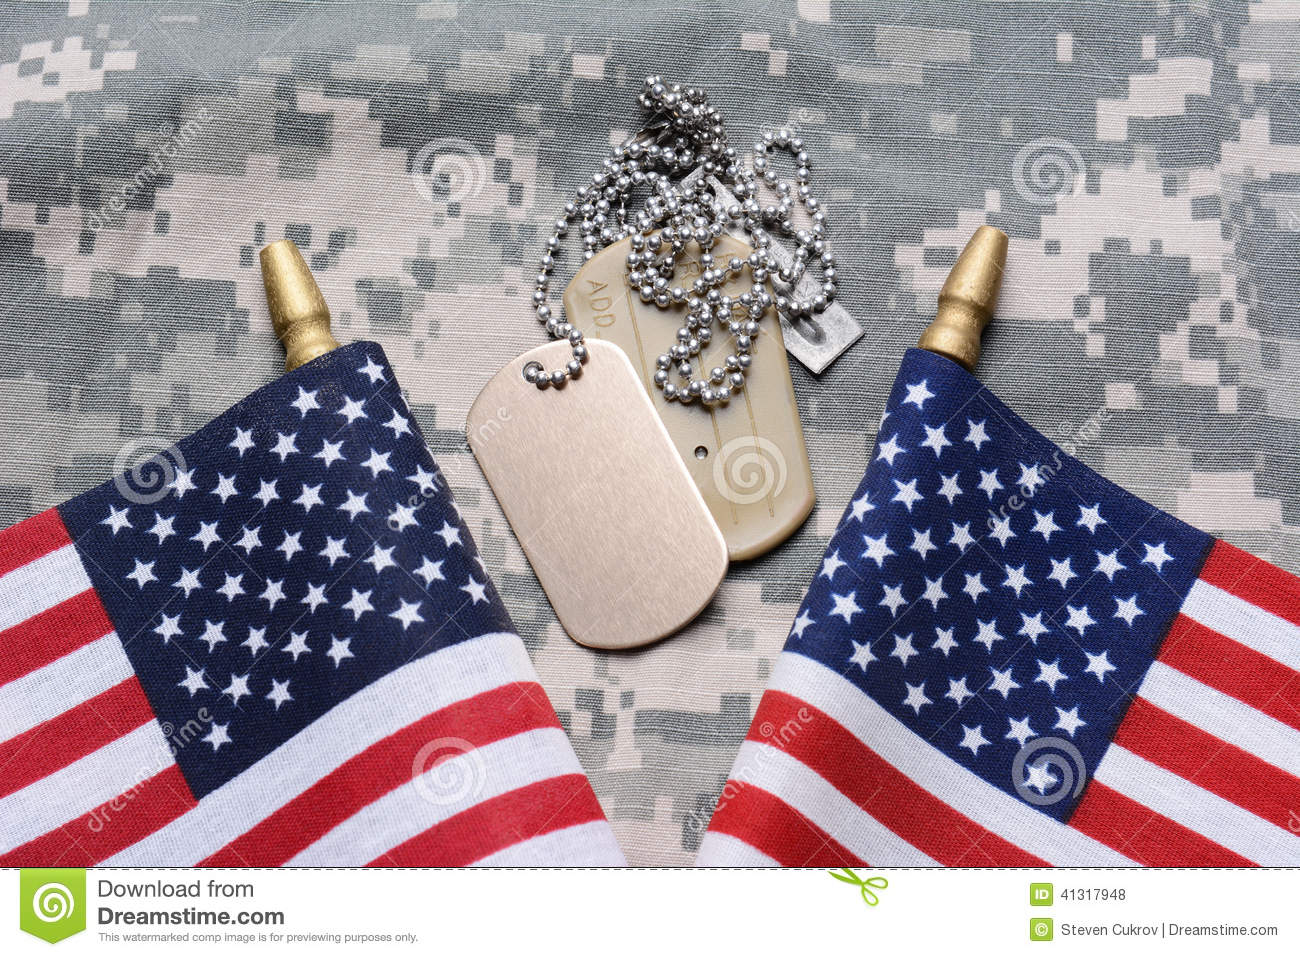 cca7a5b1b95c American Flags And Dog Tags Stock Photo - Image of fatigues